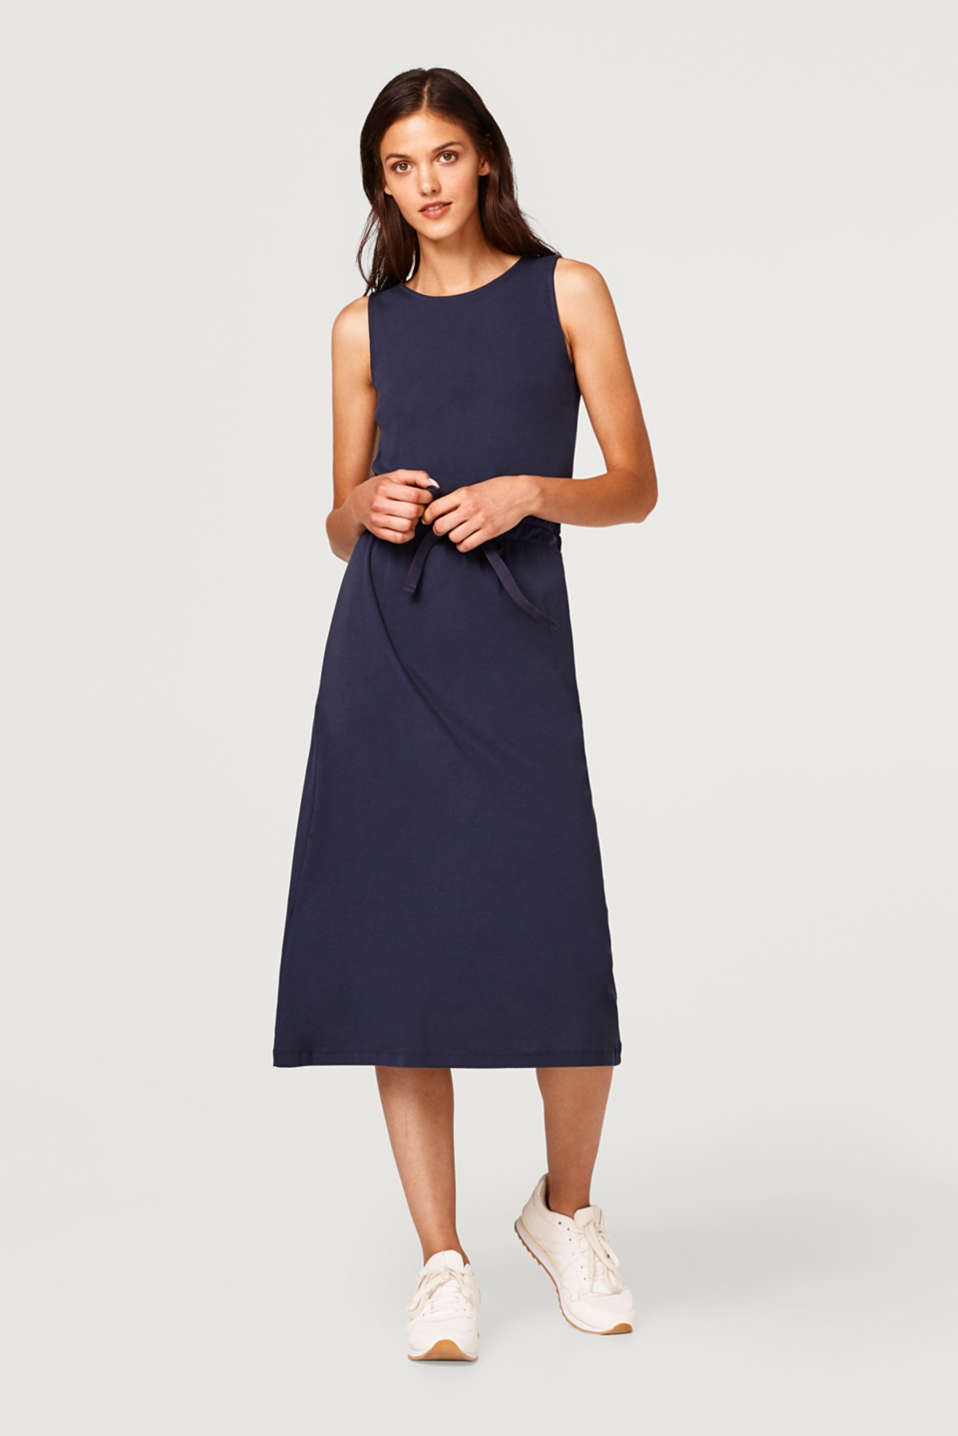 Midi dress with a drawstring, 100% cotton